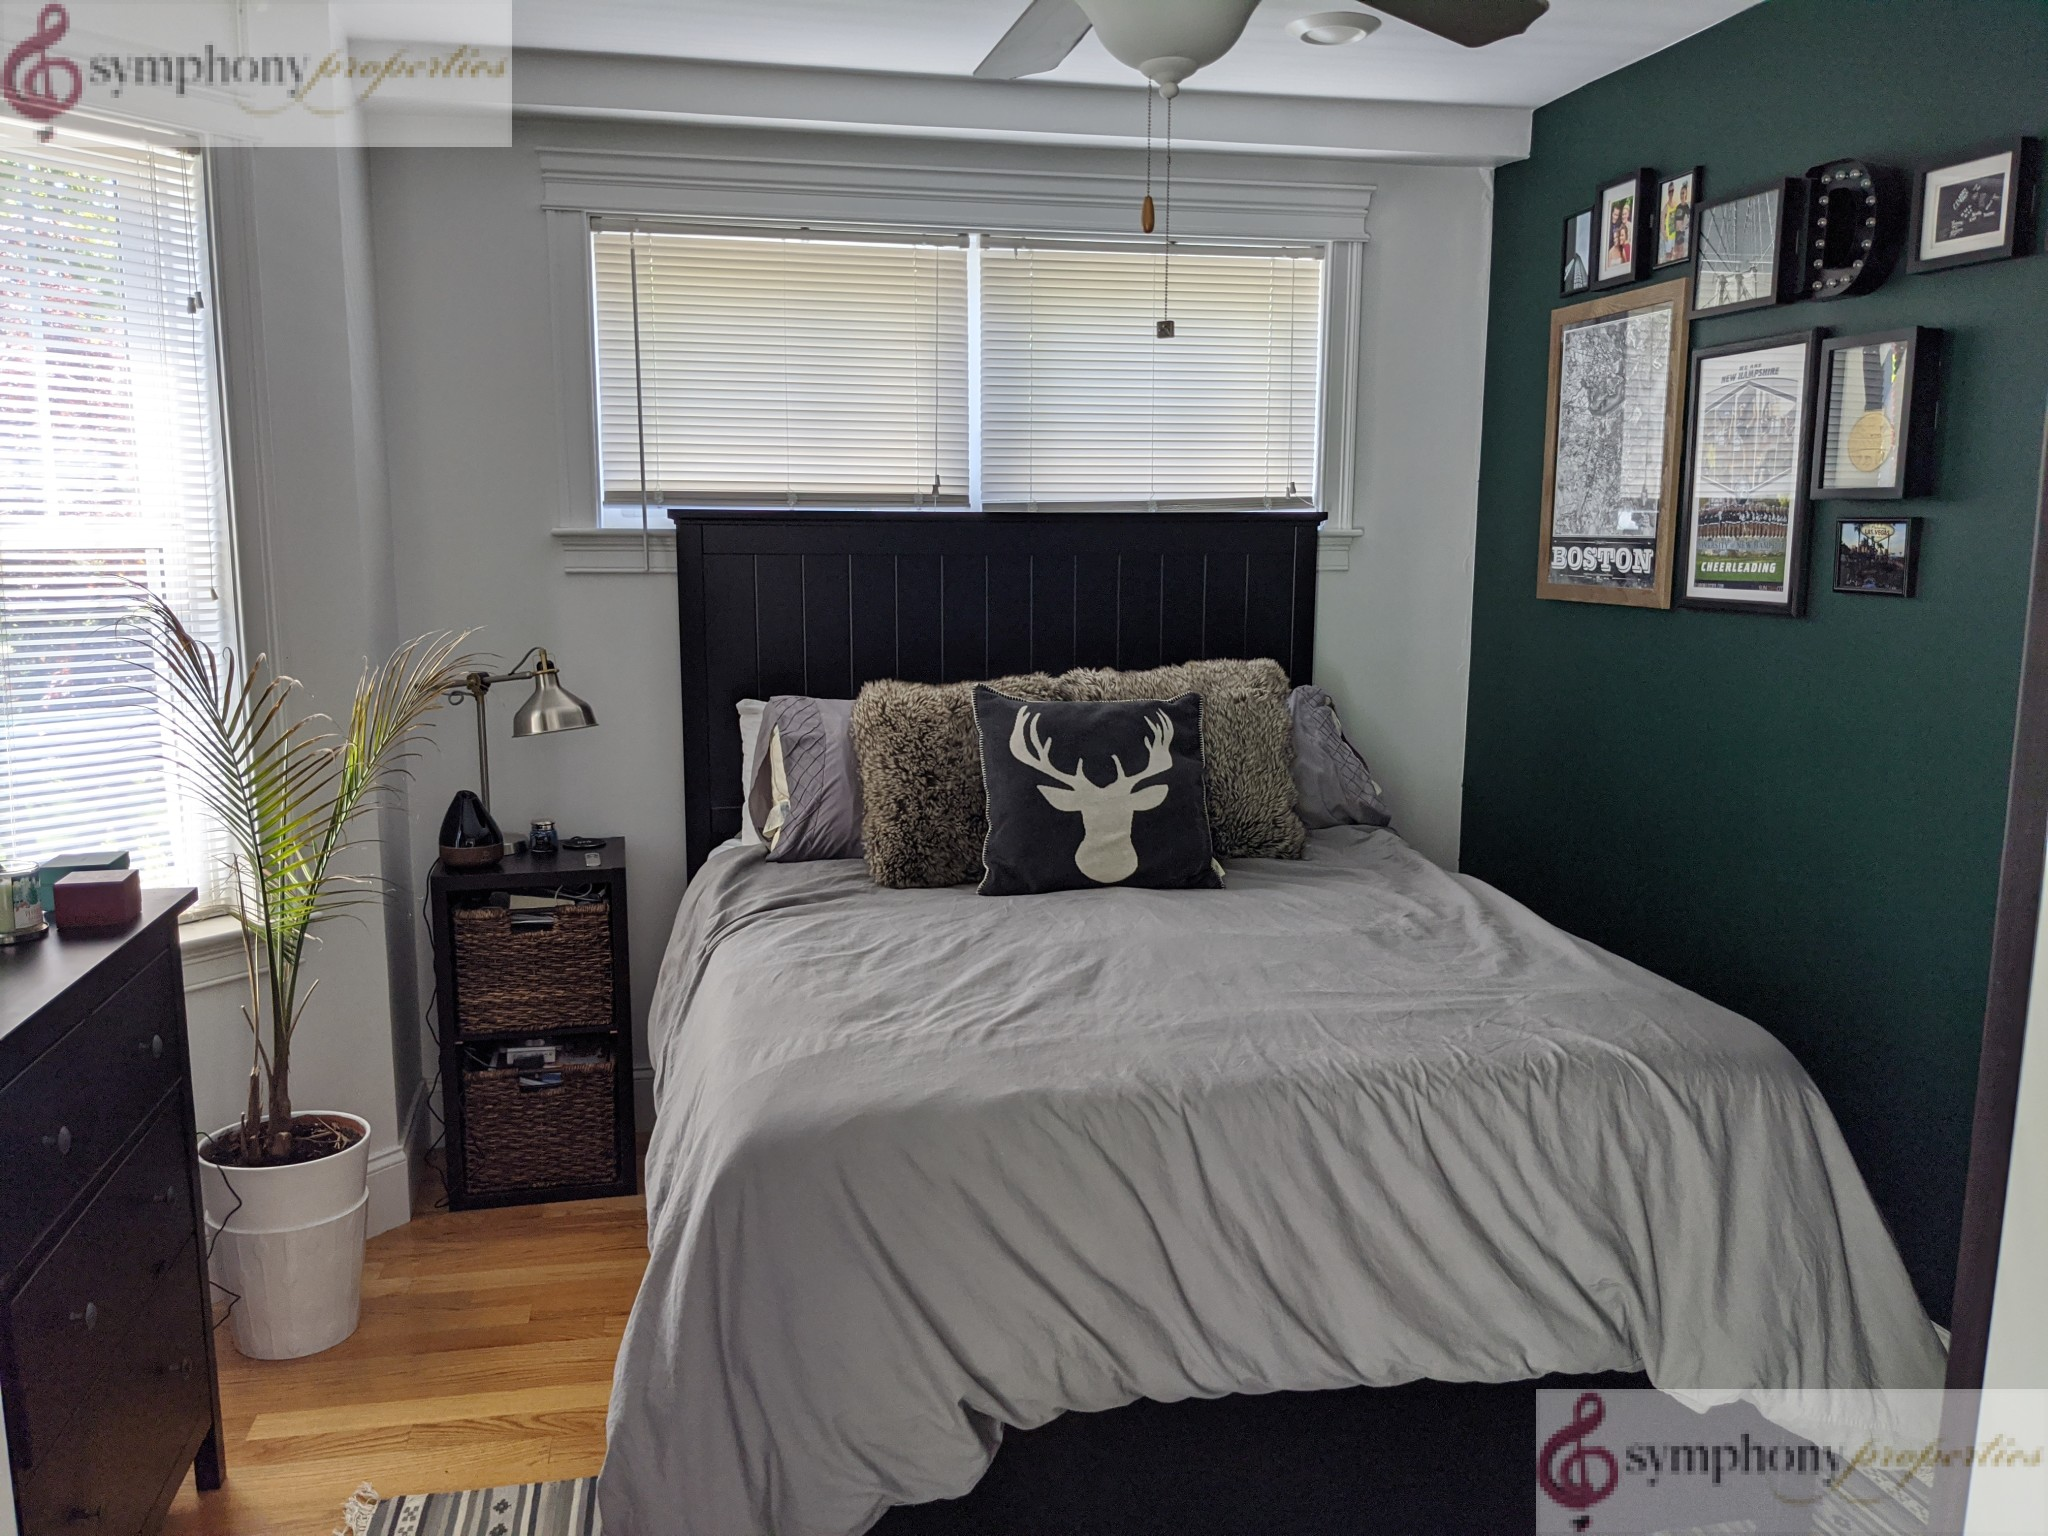 5 Beds, 2.5 Baths apartment in Boston, Allston for $5,200